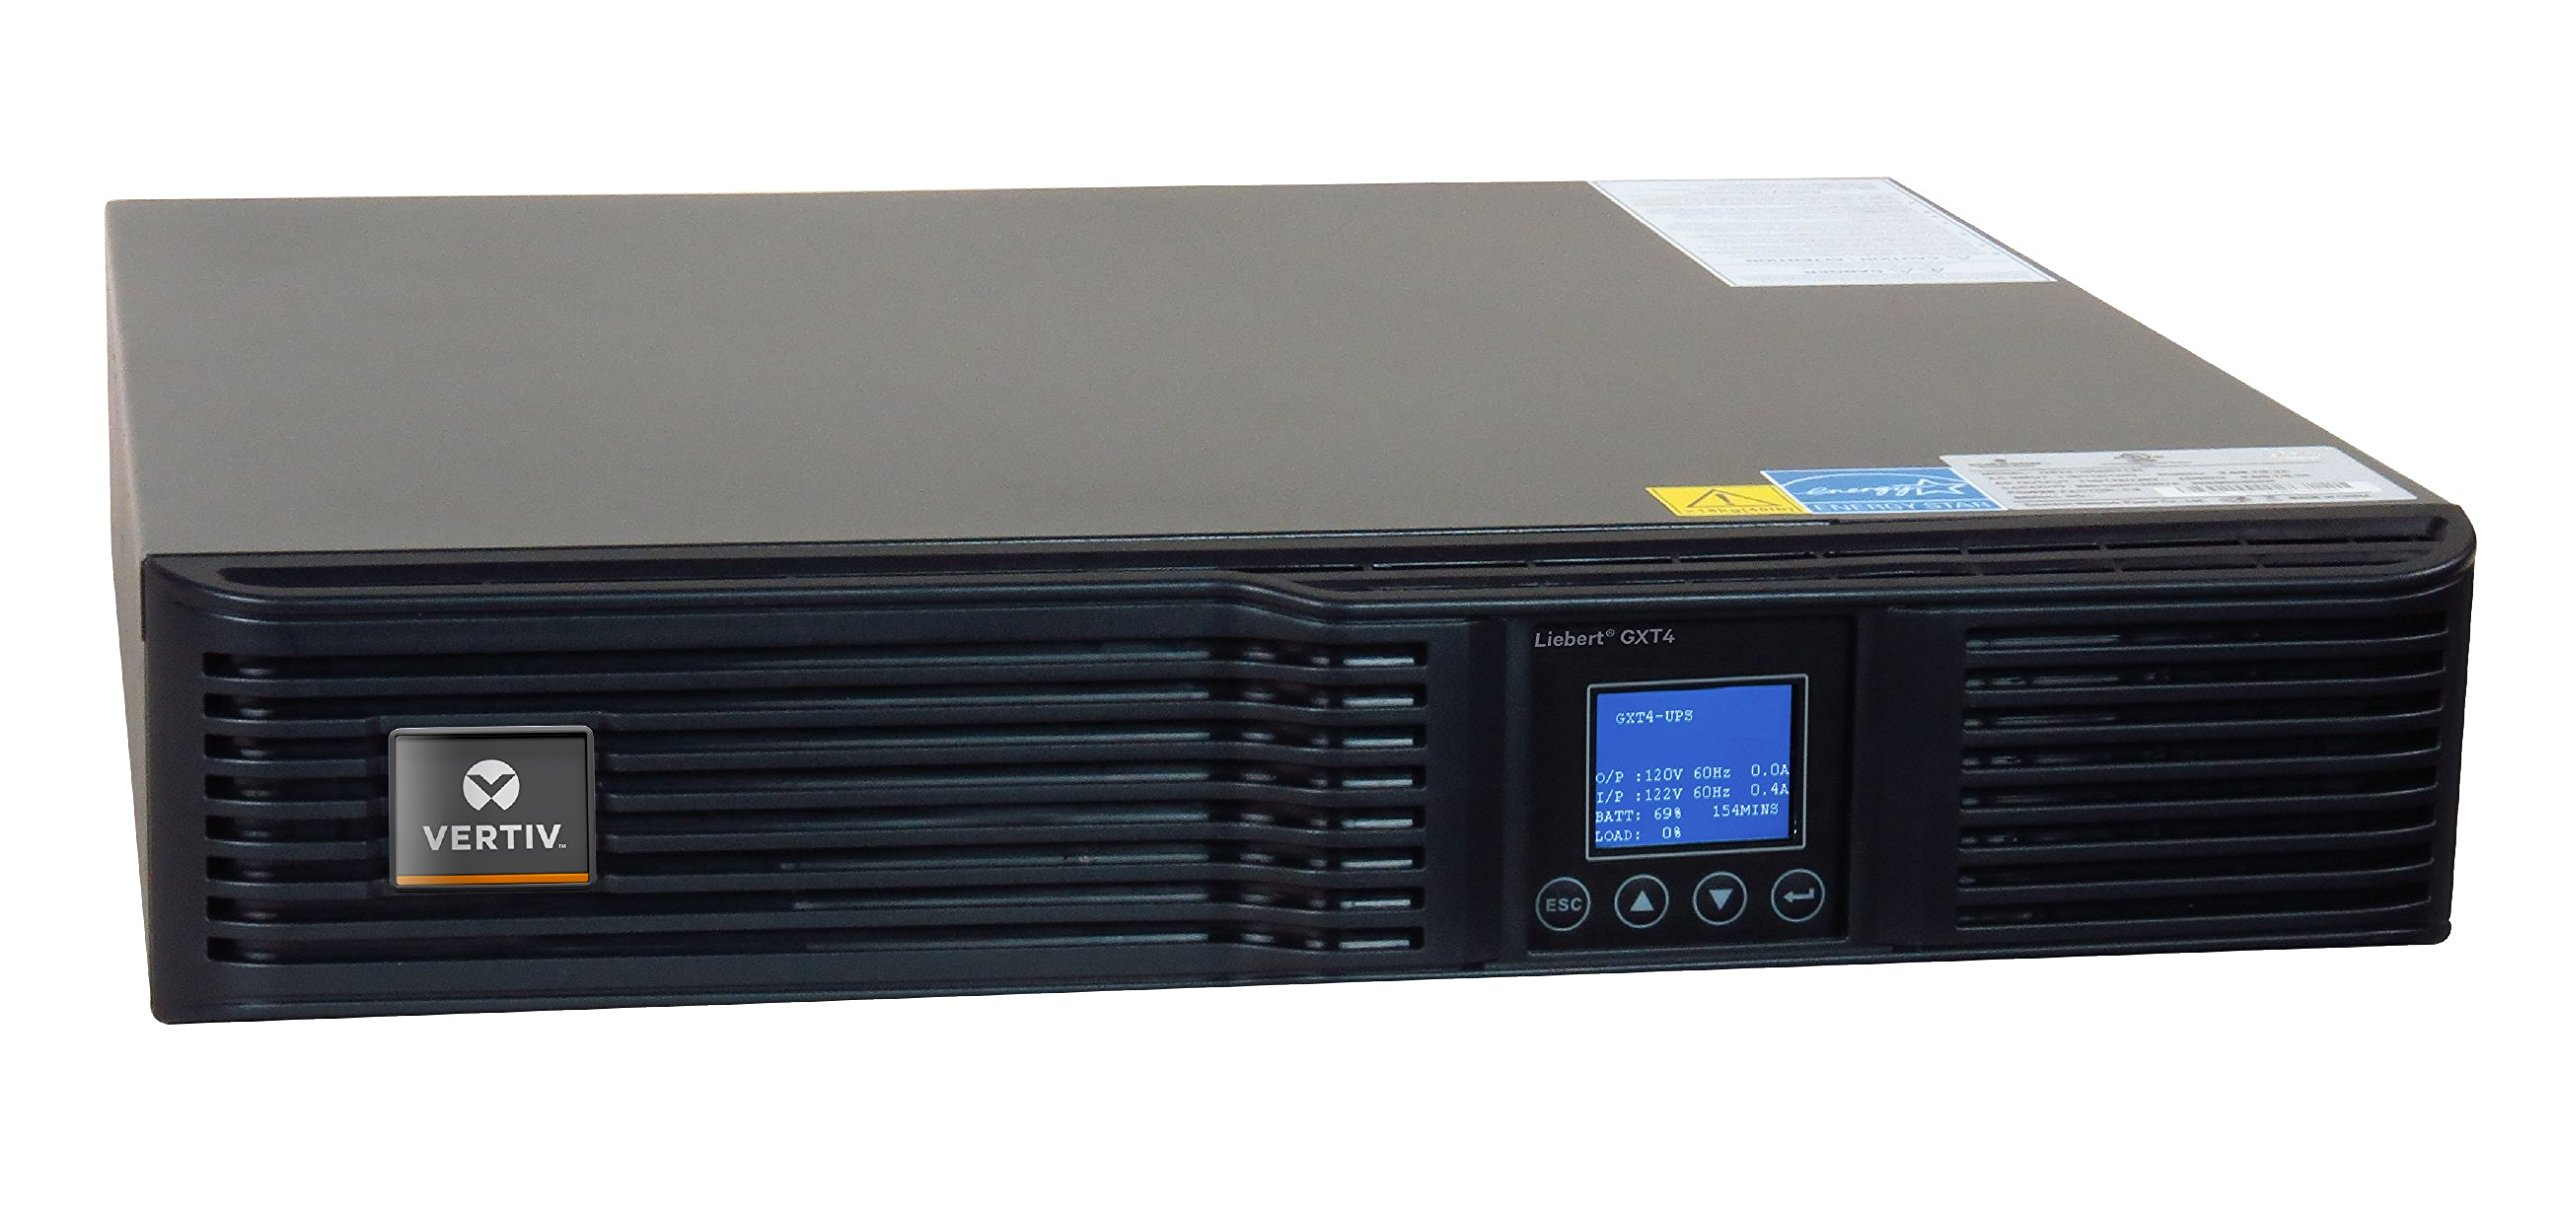 Liebert GXT4 3000VA 2700W 120V Online Double-Conversion Rack/Tower Smart UPS (GXT4-3000RT120)